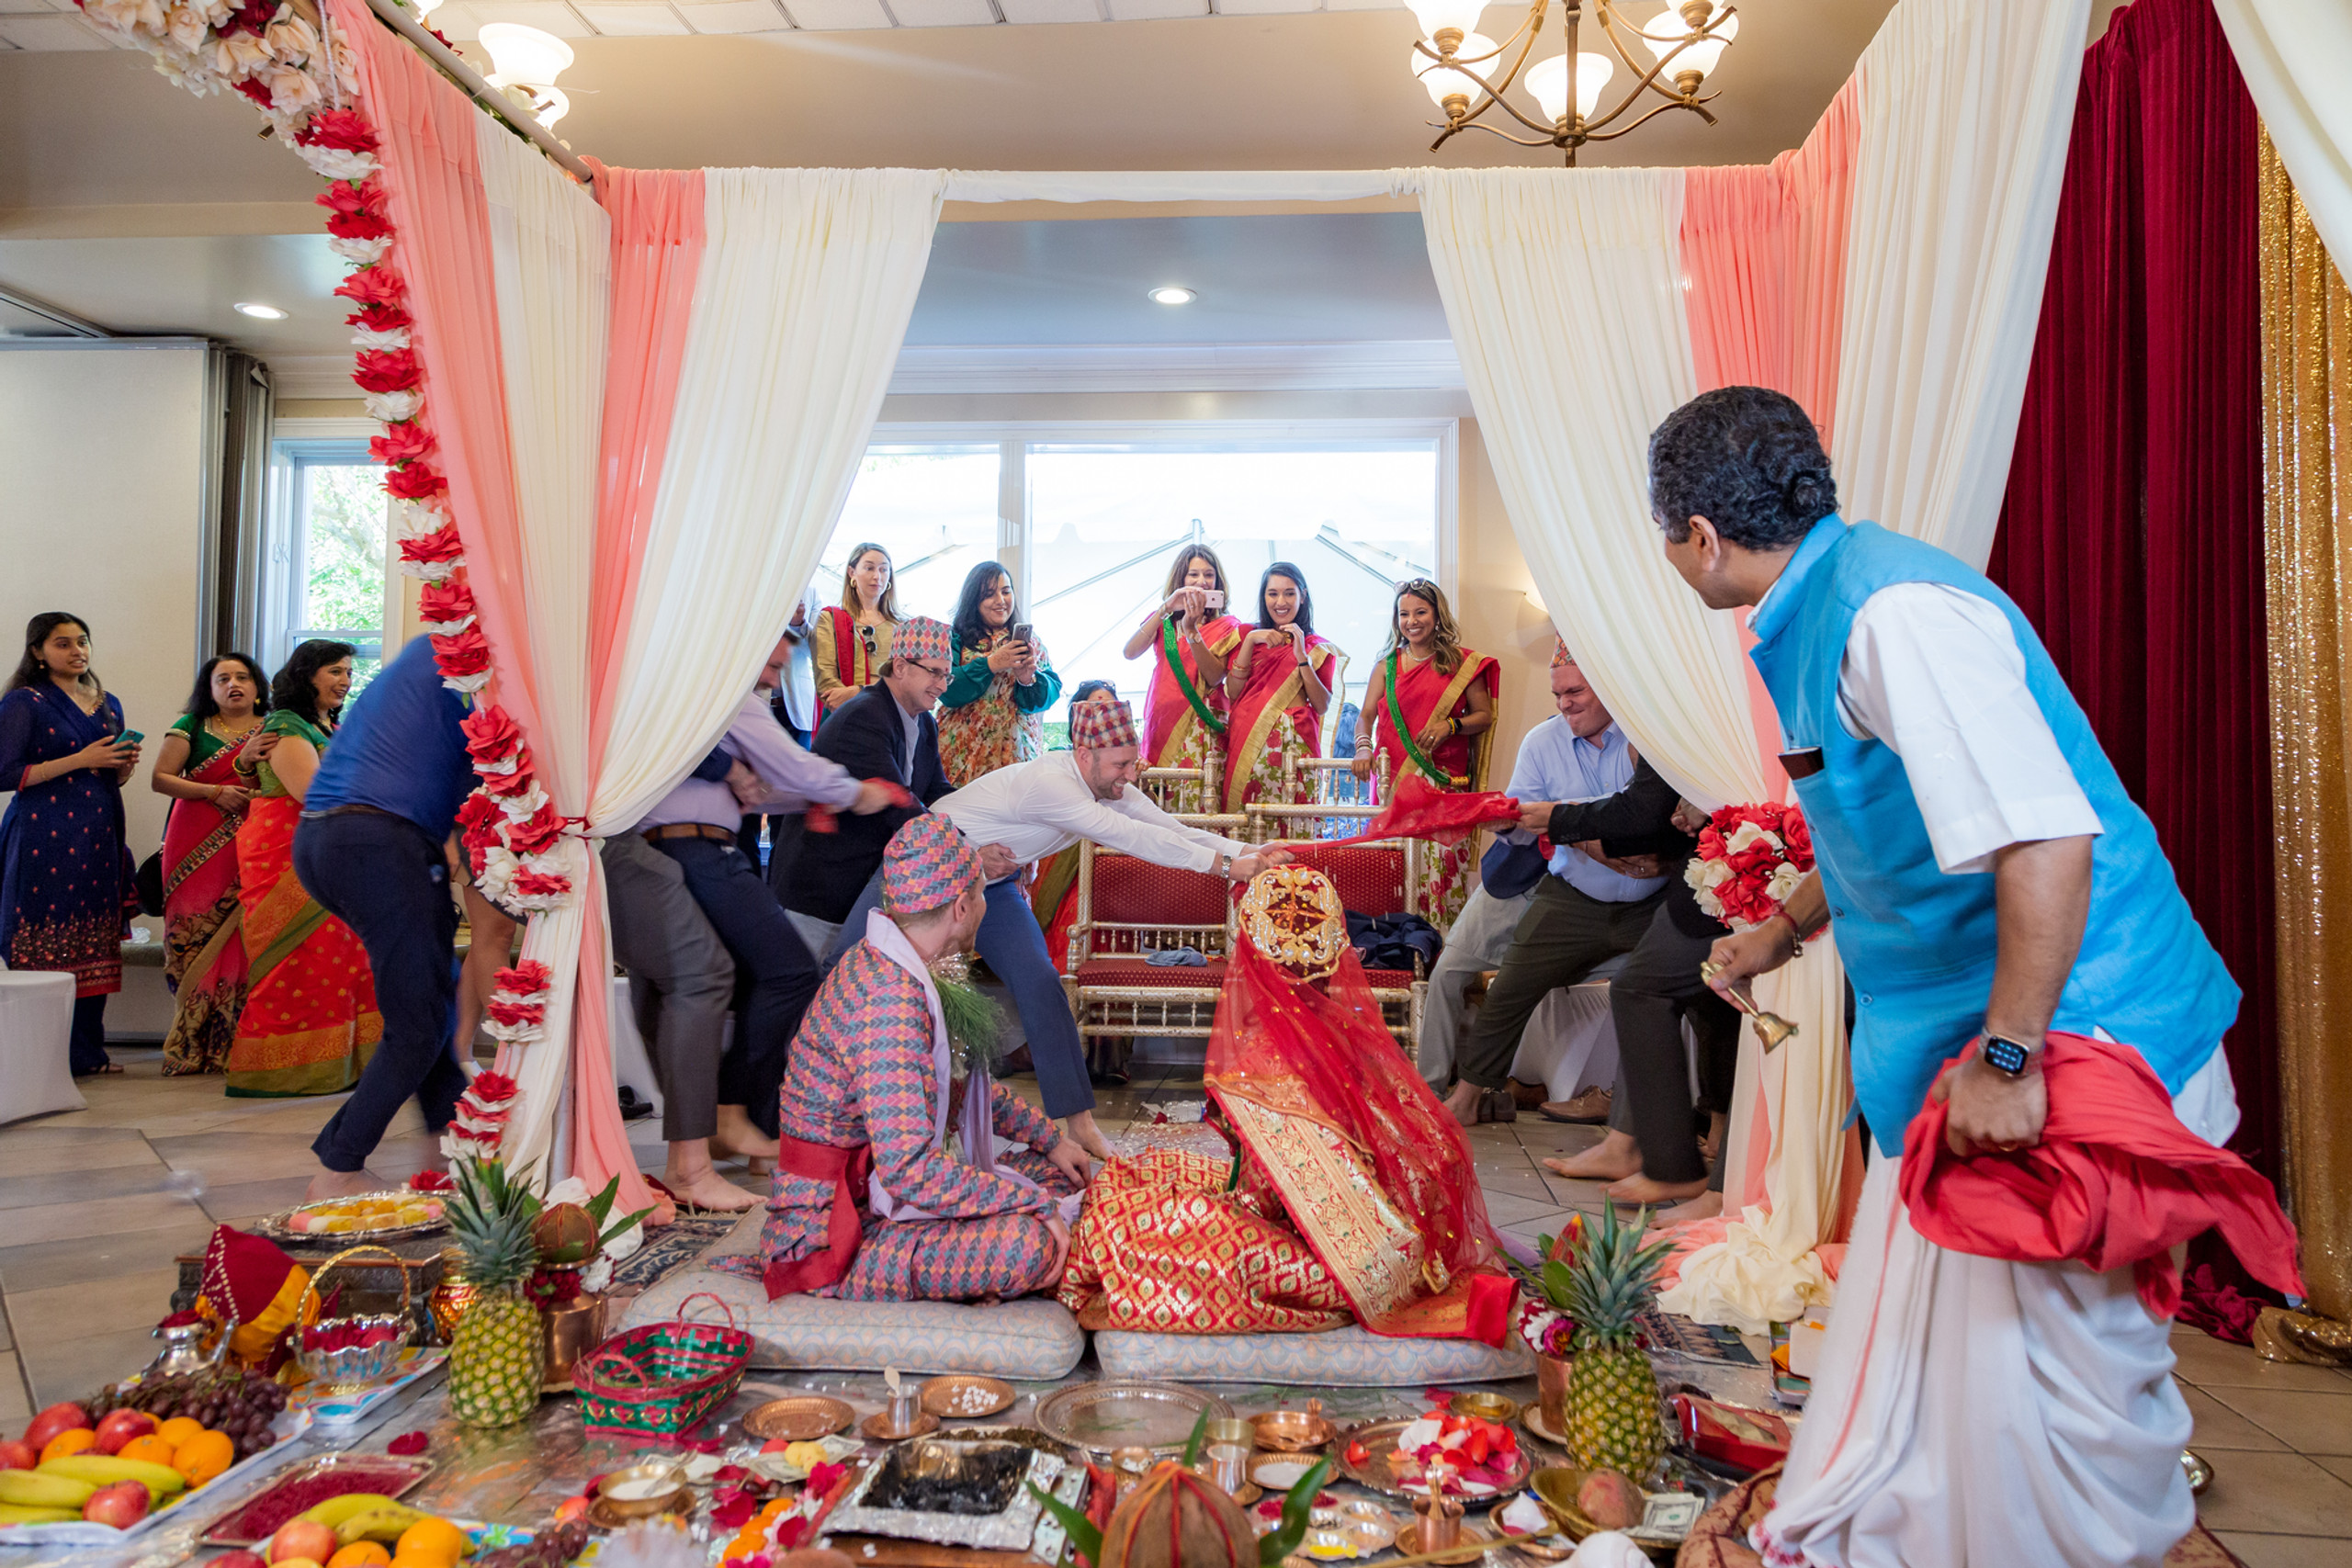 A tug-of-war style wedding ritual between men from both families during the Hindu Ceremony at the ISKCON of DC in Potomac, Maryland.